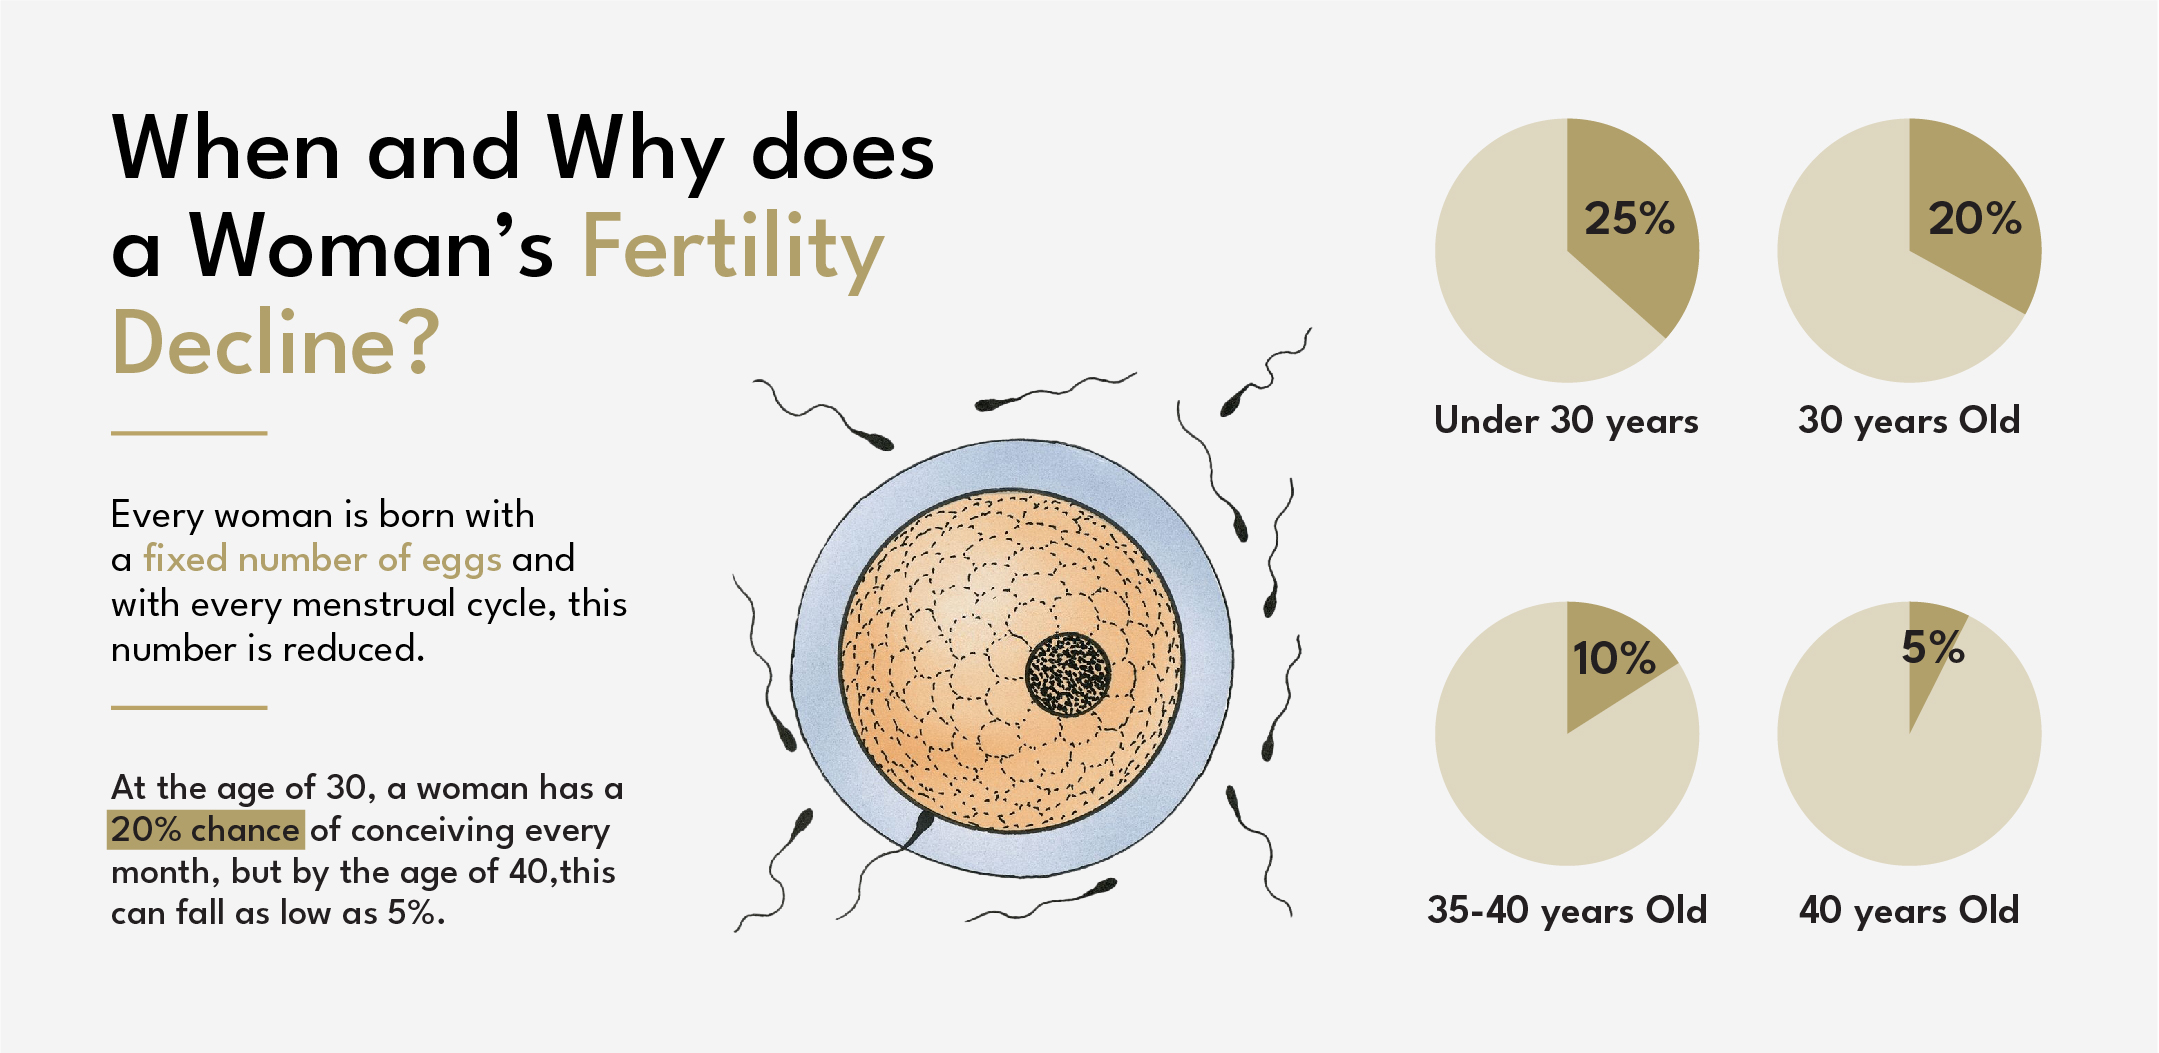 over 40 and Woman's Fertility Decline